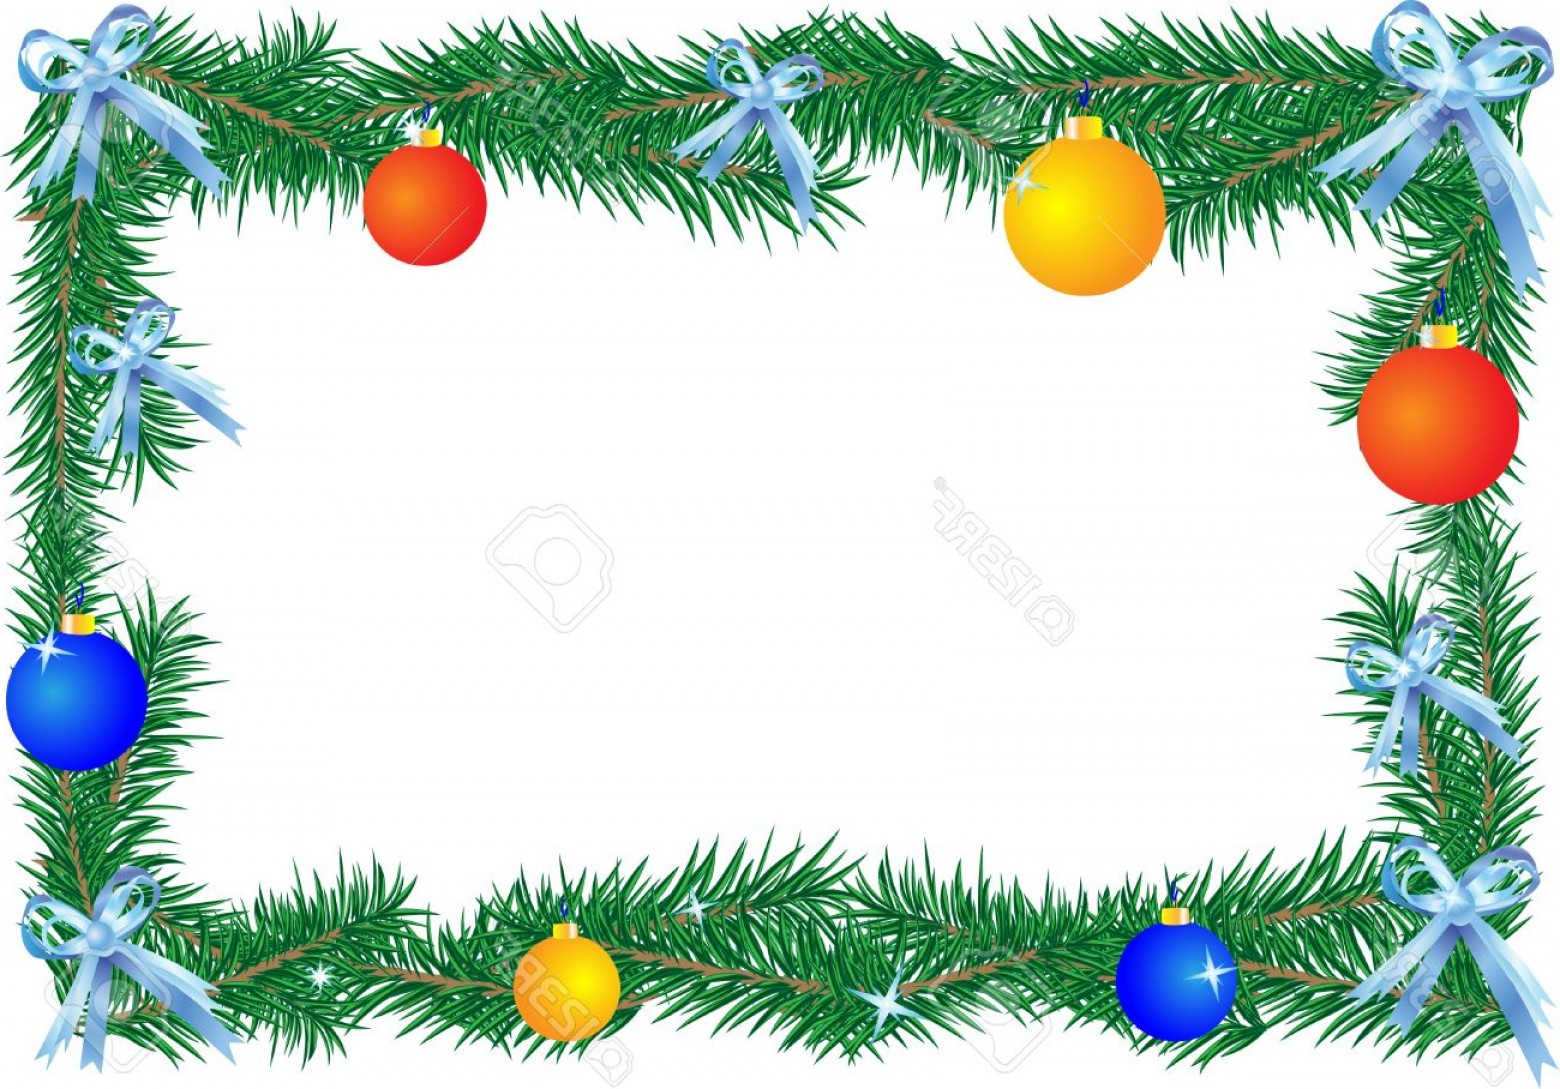 Christmas Horizontal Vector: Photochristmas Border On The White Background Horizontal Illustration